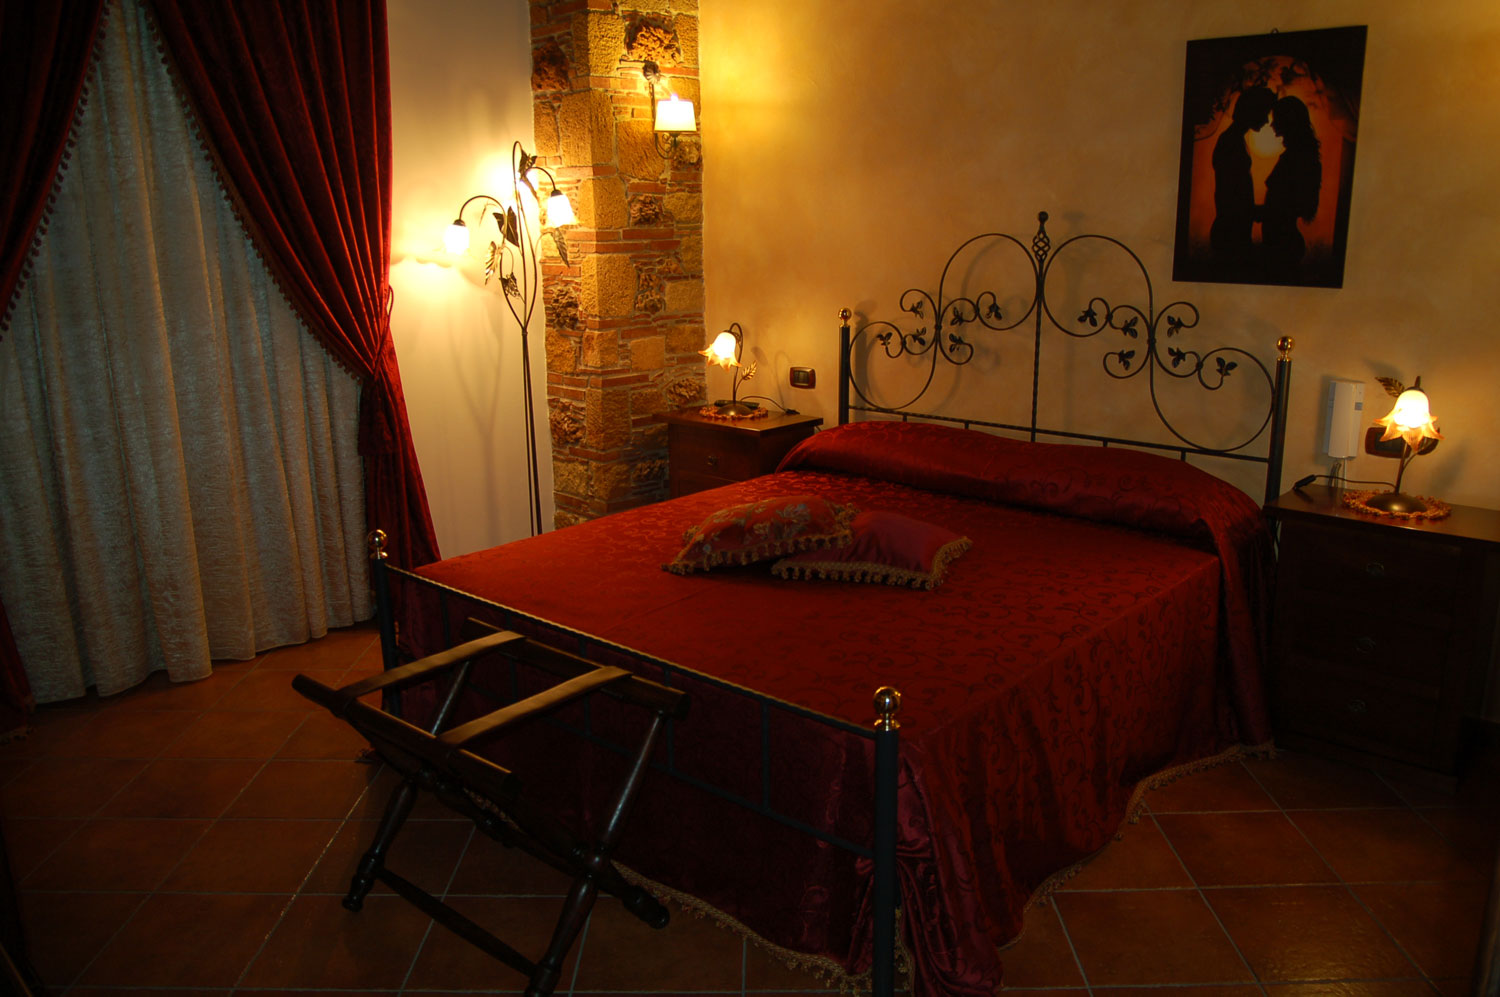 Le Oasi Bed & Breakfast